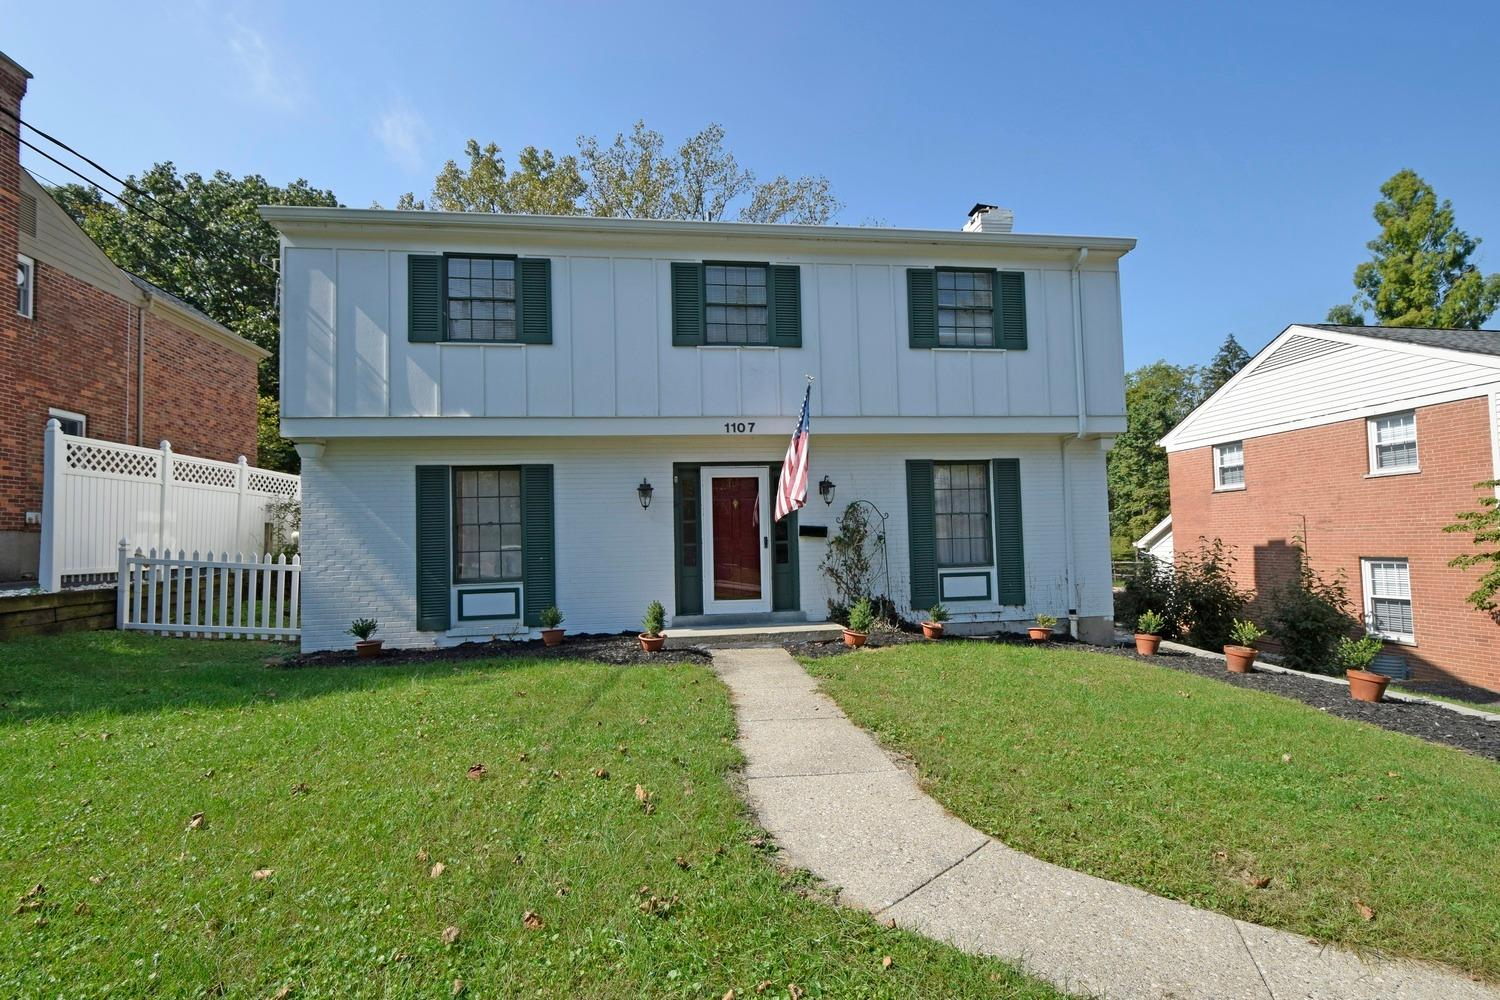 Property for sale at 1107 Paxton Avenue, Cincinnati,  OH 45208